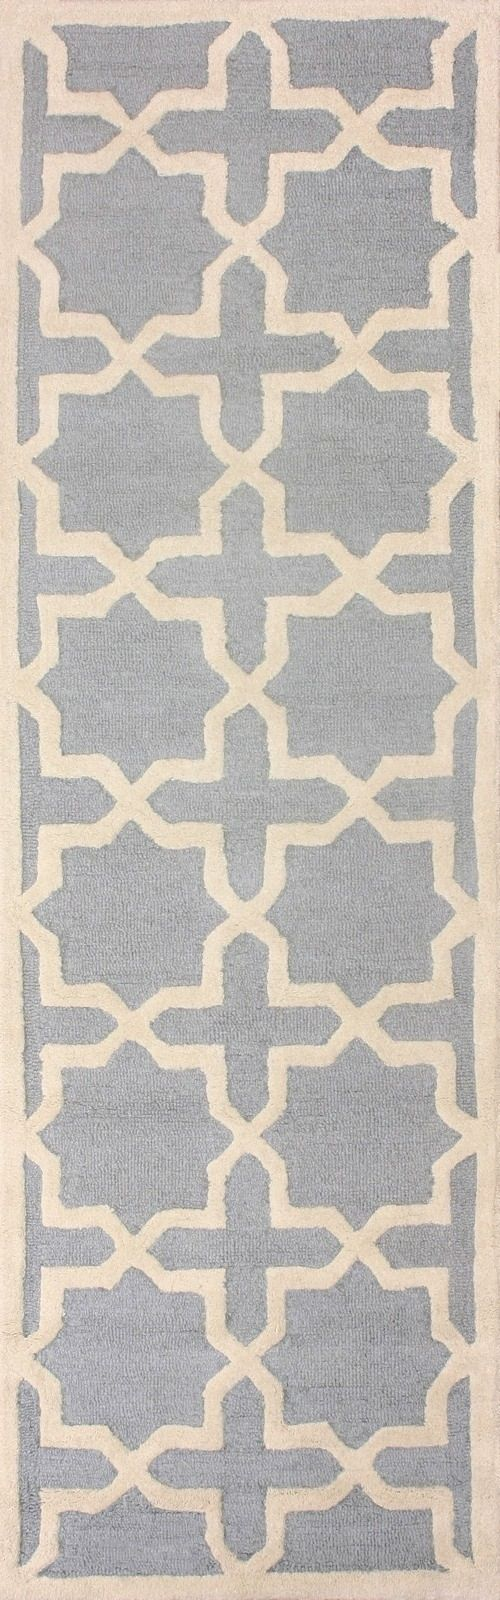 nuloom decor contemporary area rug collection